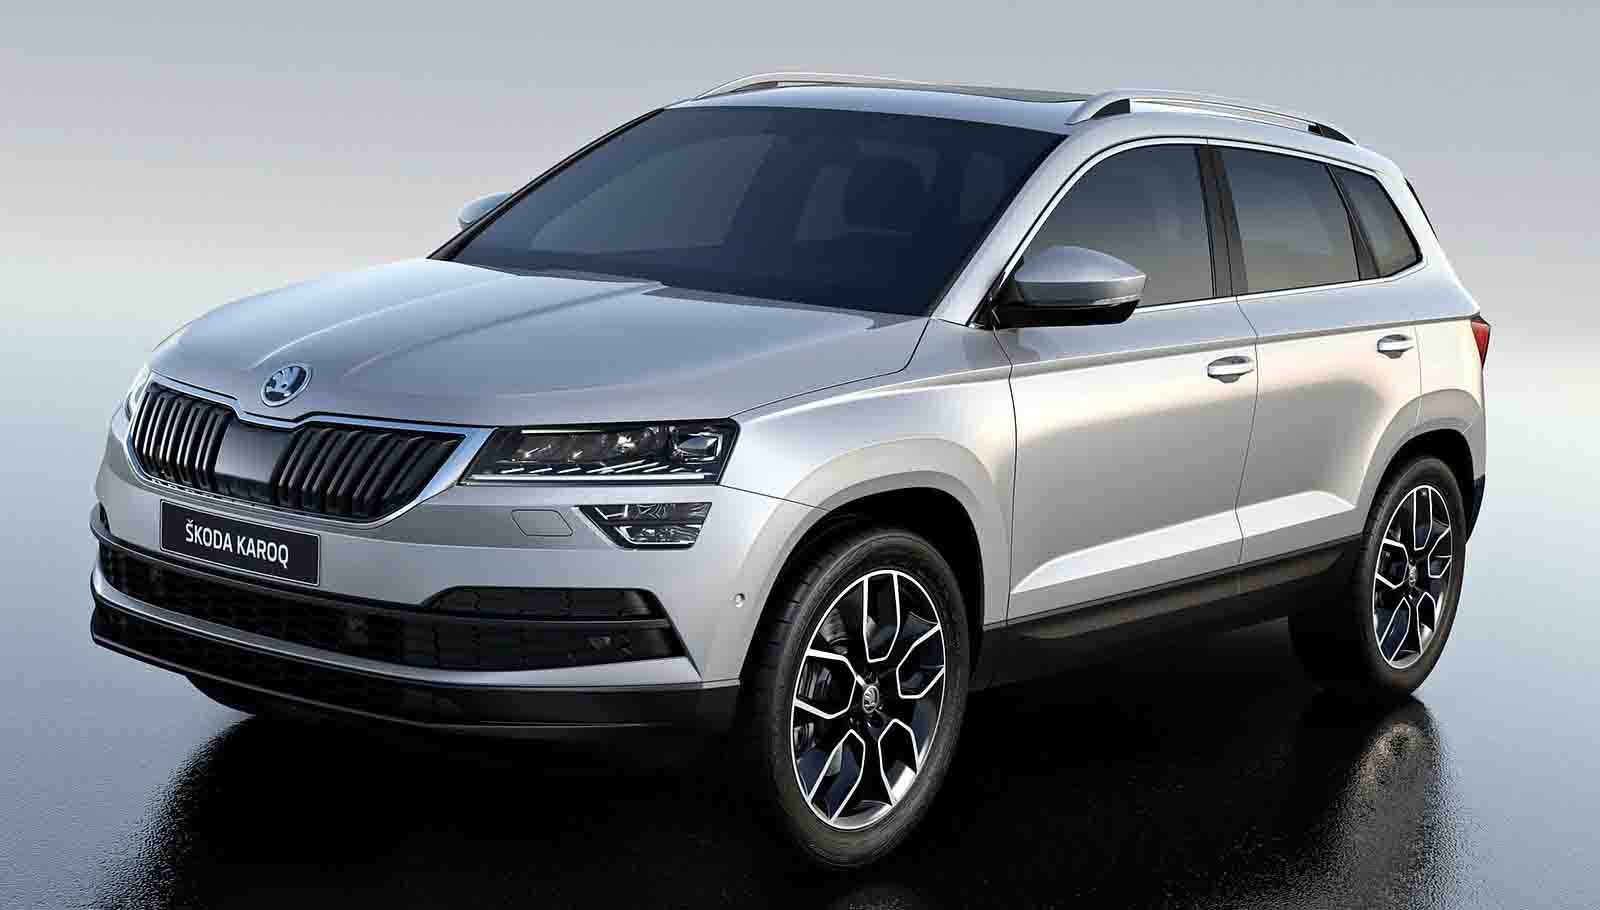 Skoda-Karoq 1.0 TSI 115 SE Technology 5dr Manual